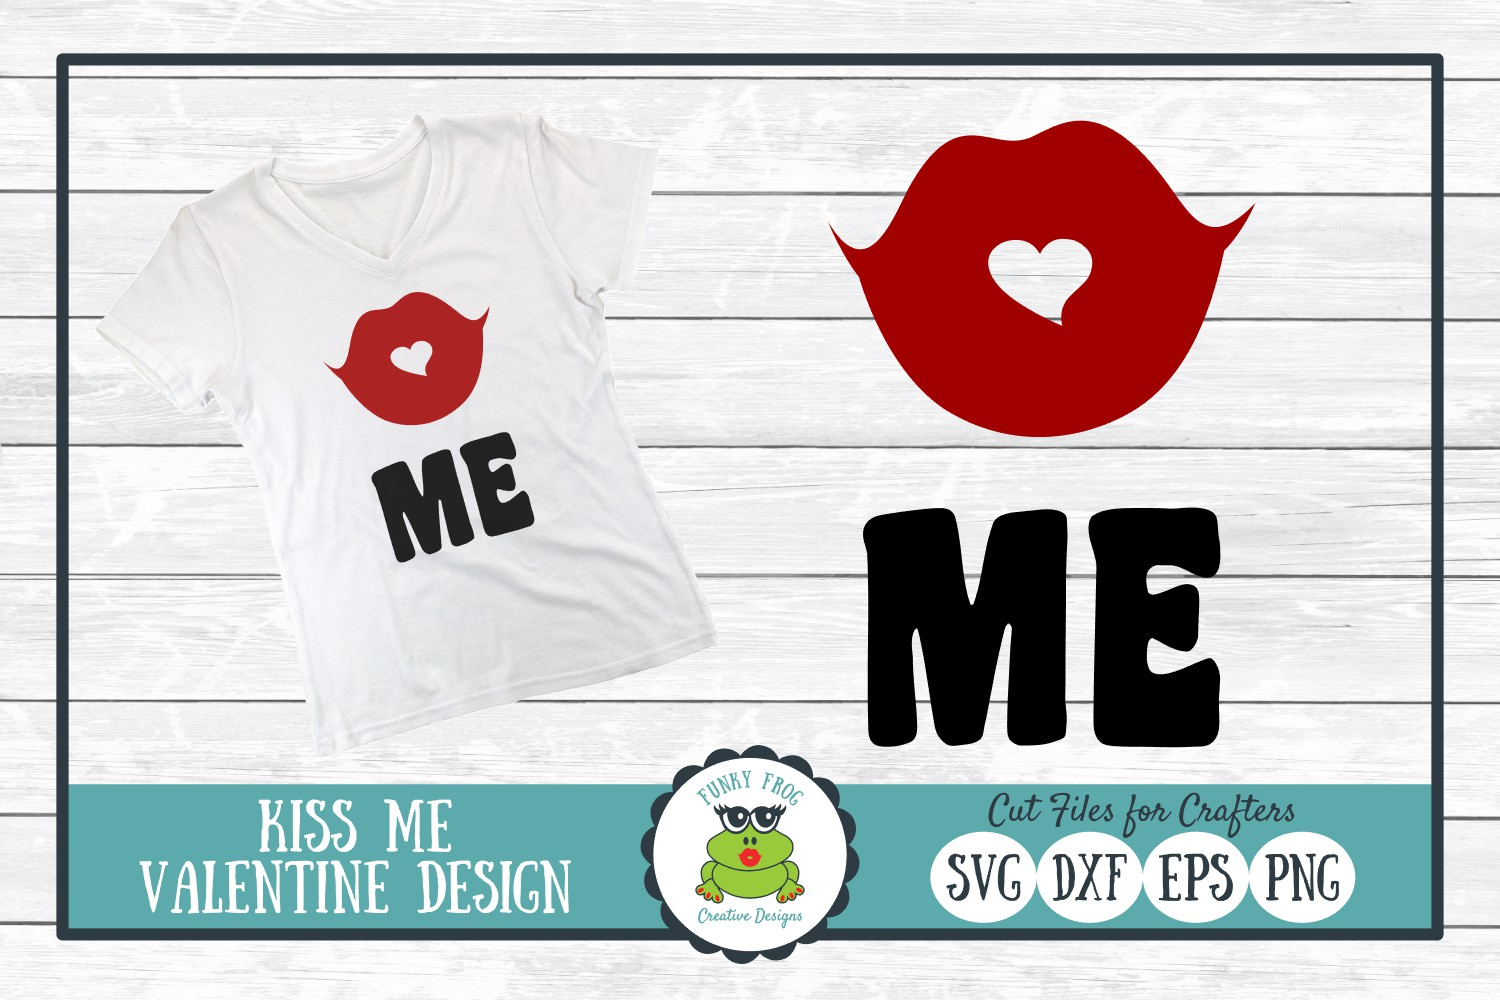 Download Free Kiss Me Valentine Graphic By Funkyfrogcreativedesigns for Cricut Explore, Silhouette and other cutting machines.